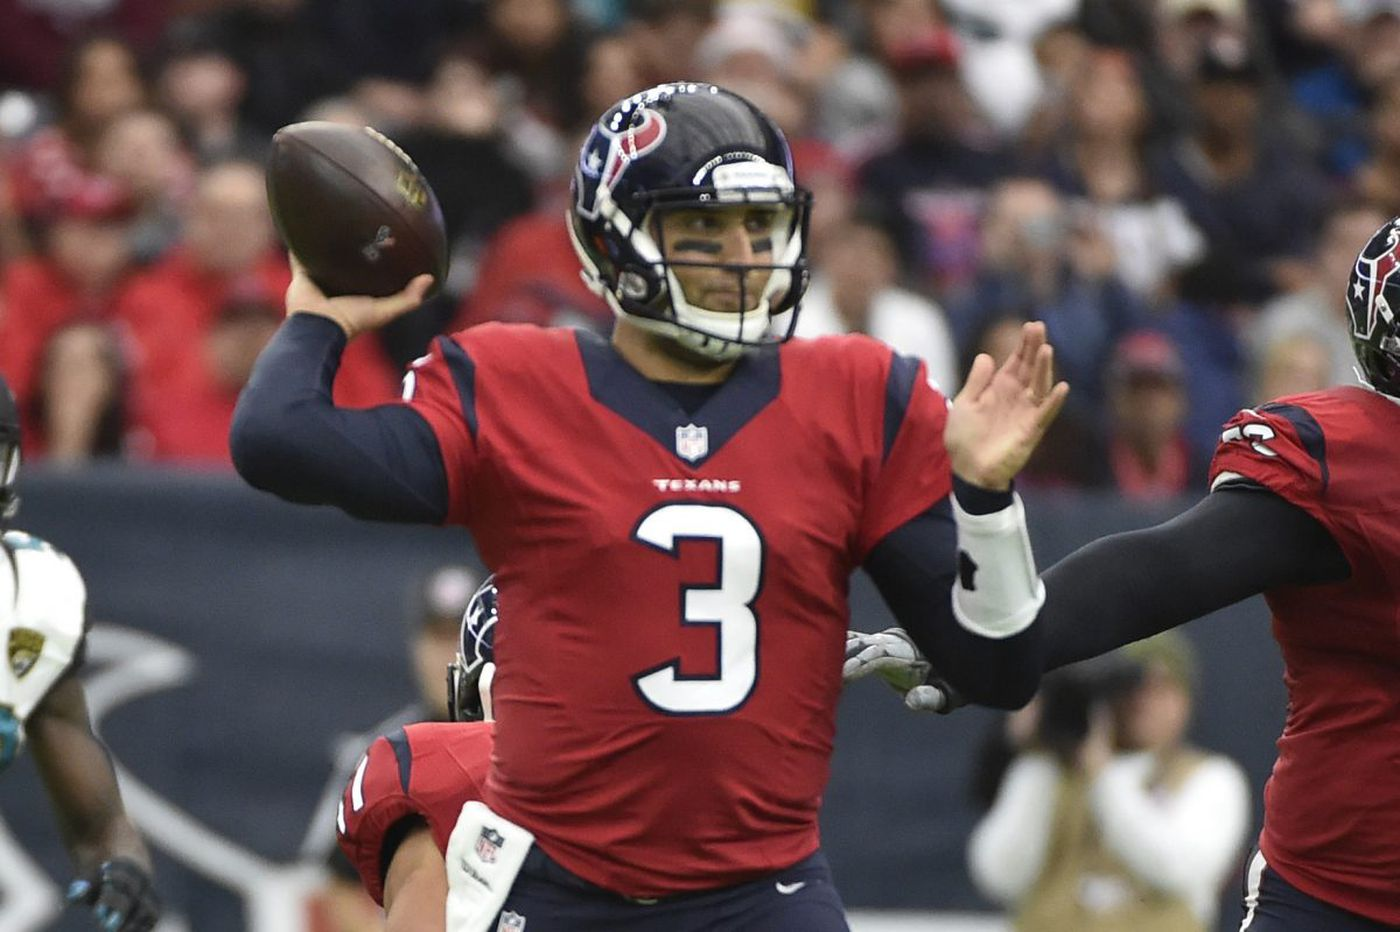 finest selection e68a2 3c3f6 Sports Tonight: Tom Savage, QB from Cardinal O'Hara, begins ...